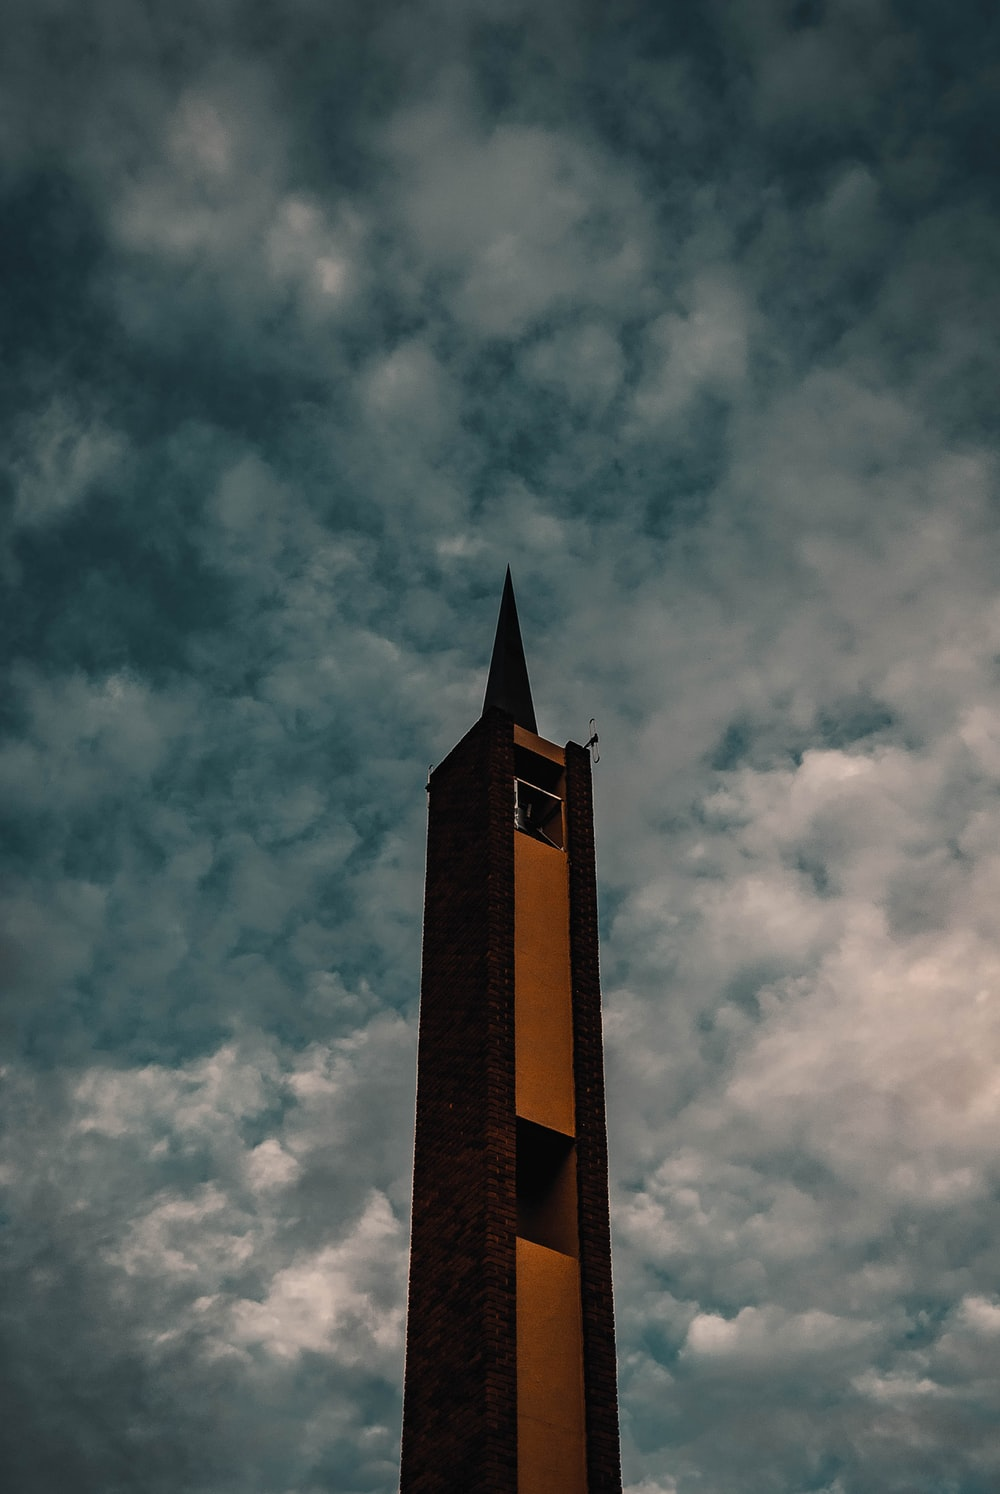 brown concrete tower under cloudy sky during daytime